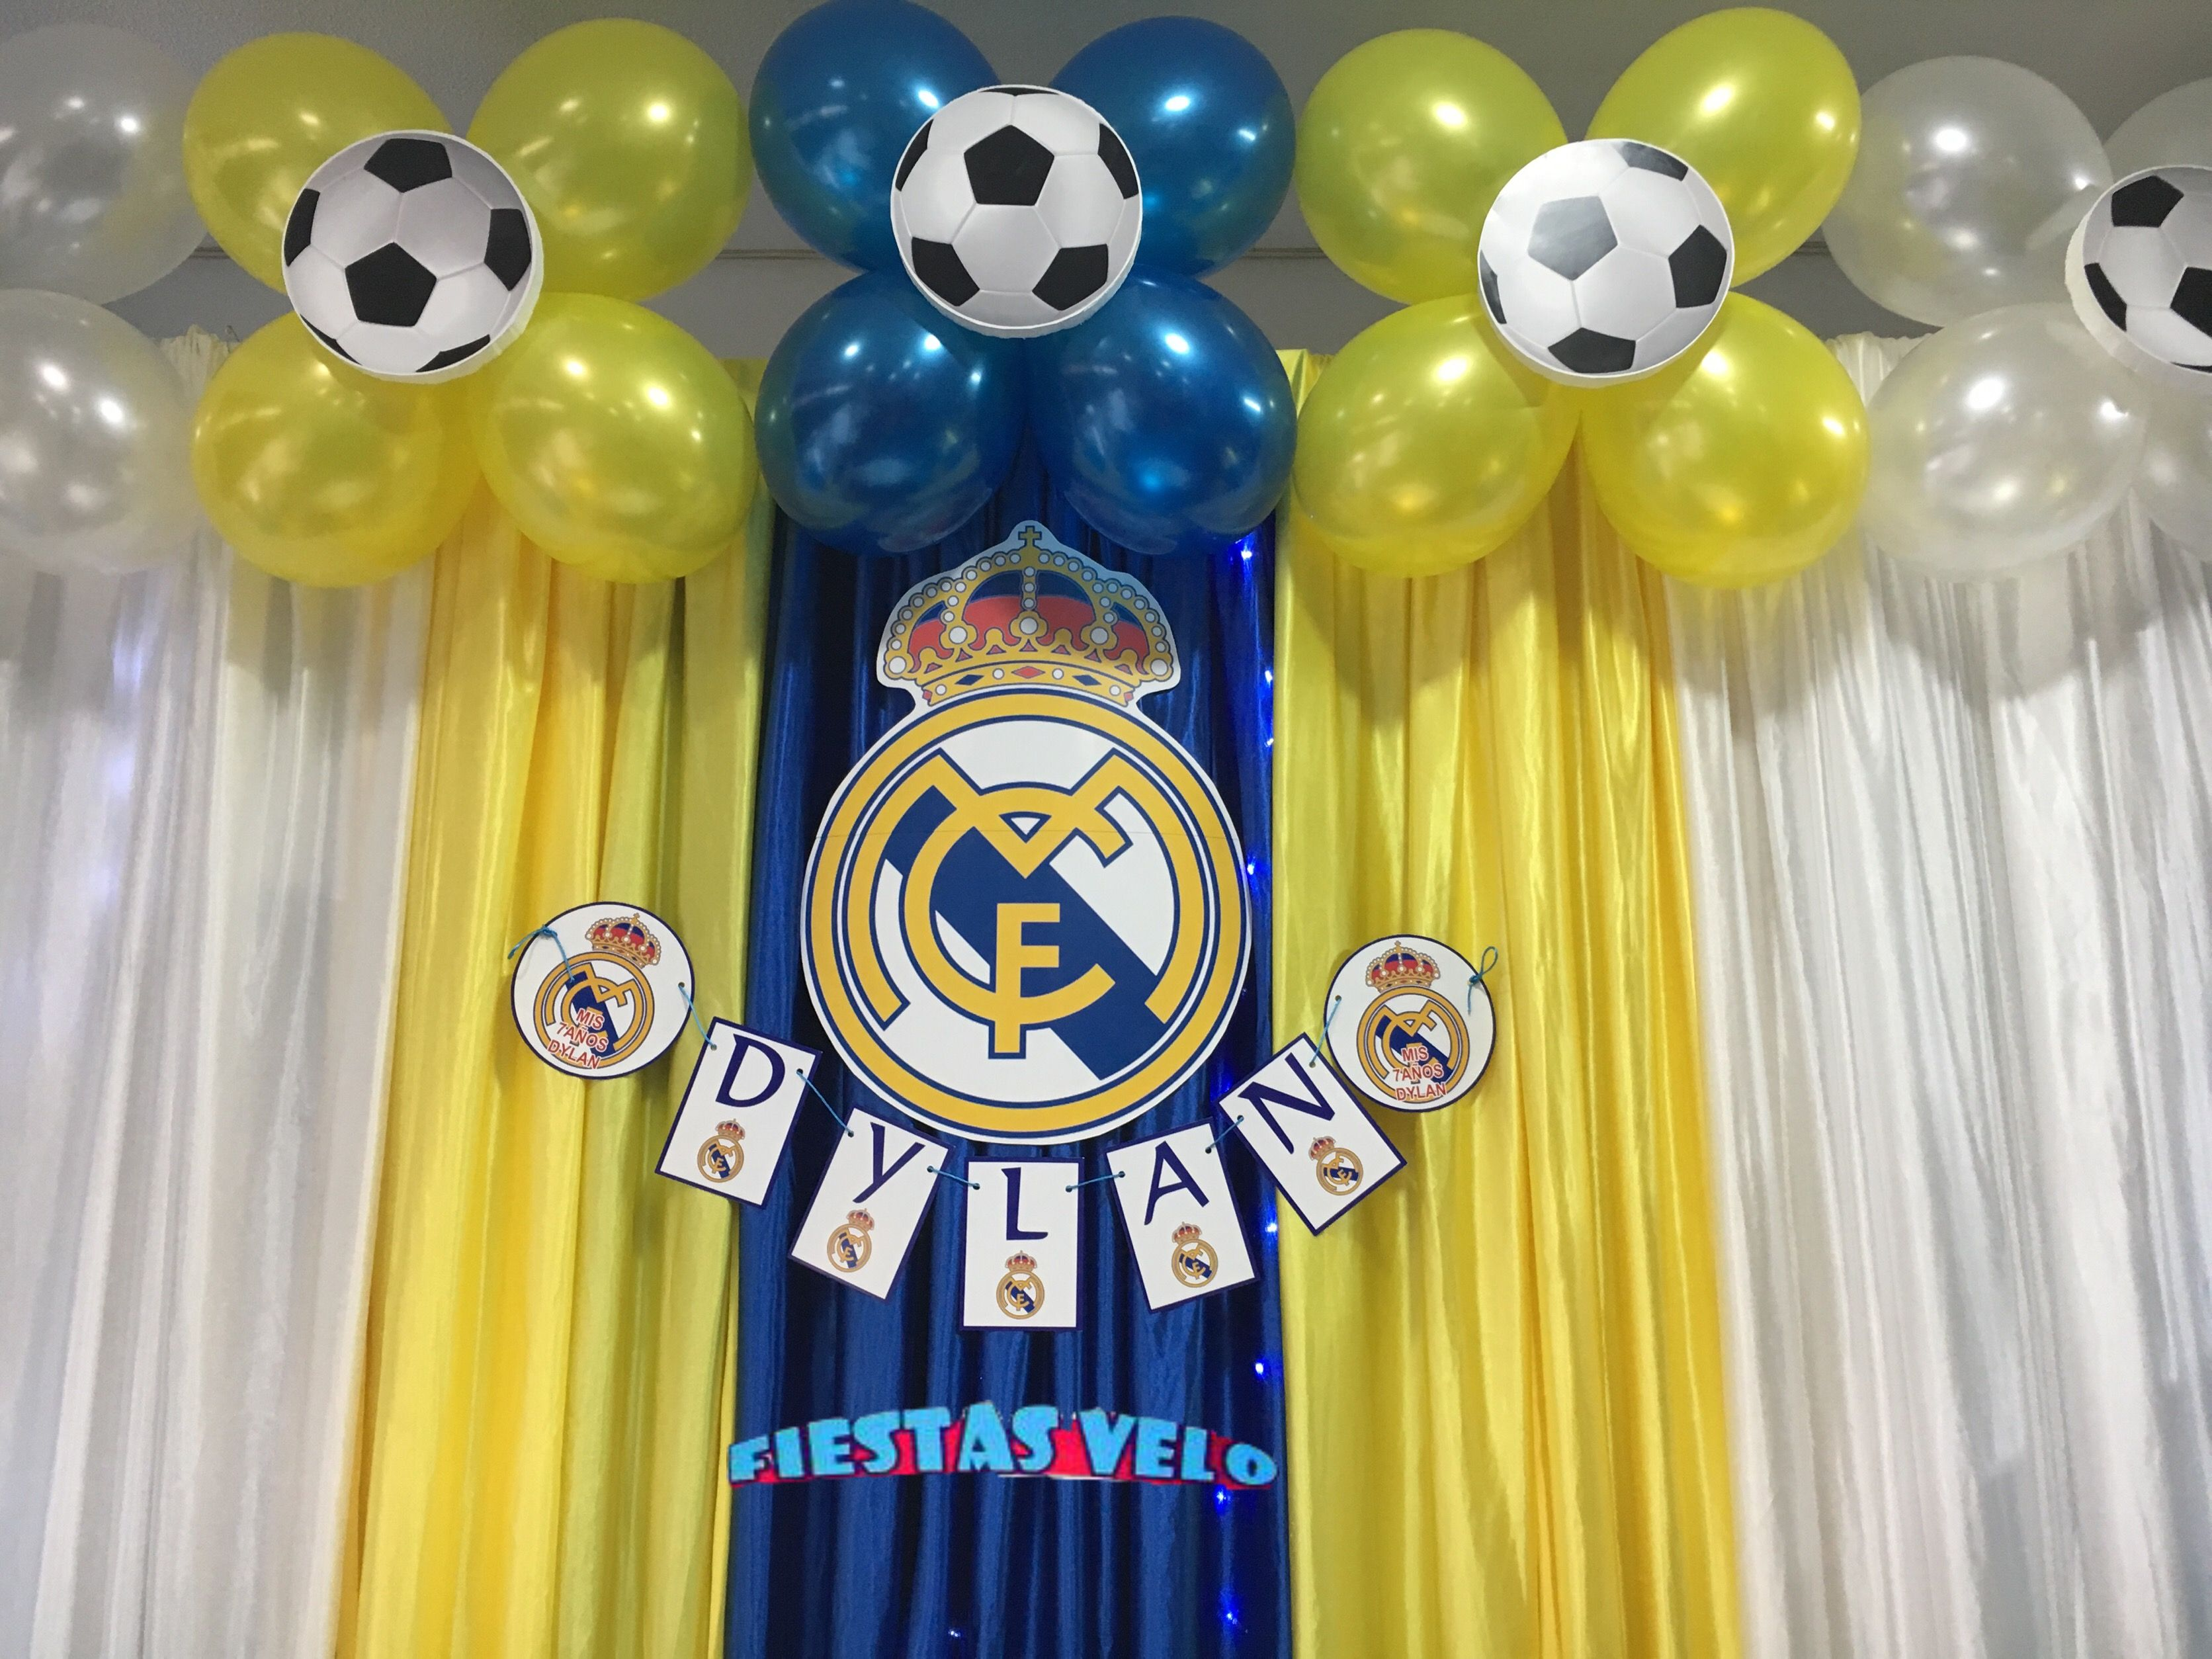 Pin by decoraciones para eventos fiestas velo on decoraci n real madrid pinterest real - Decoracion madrid ...